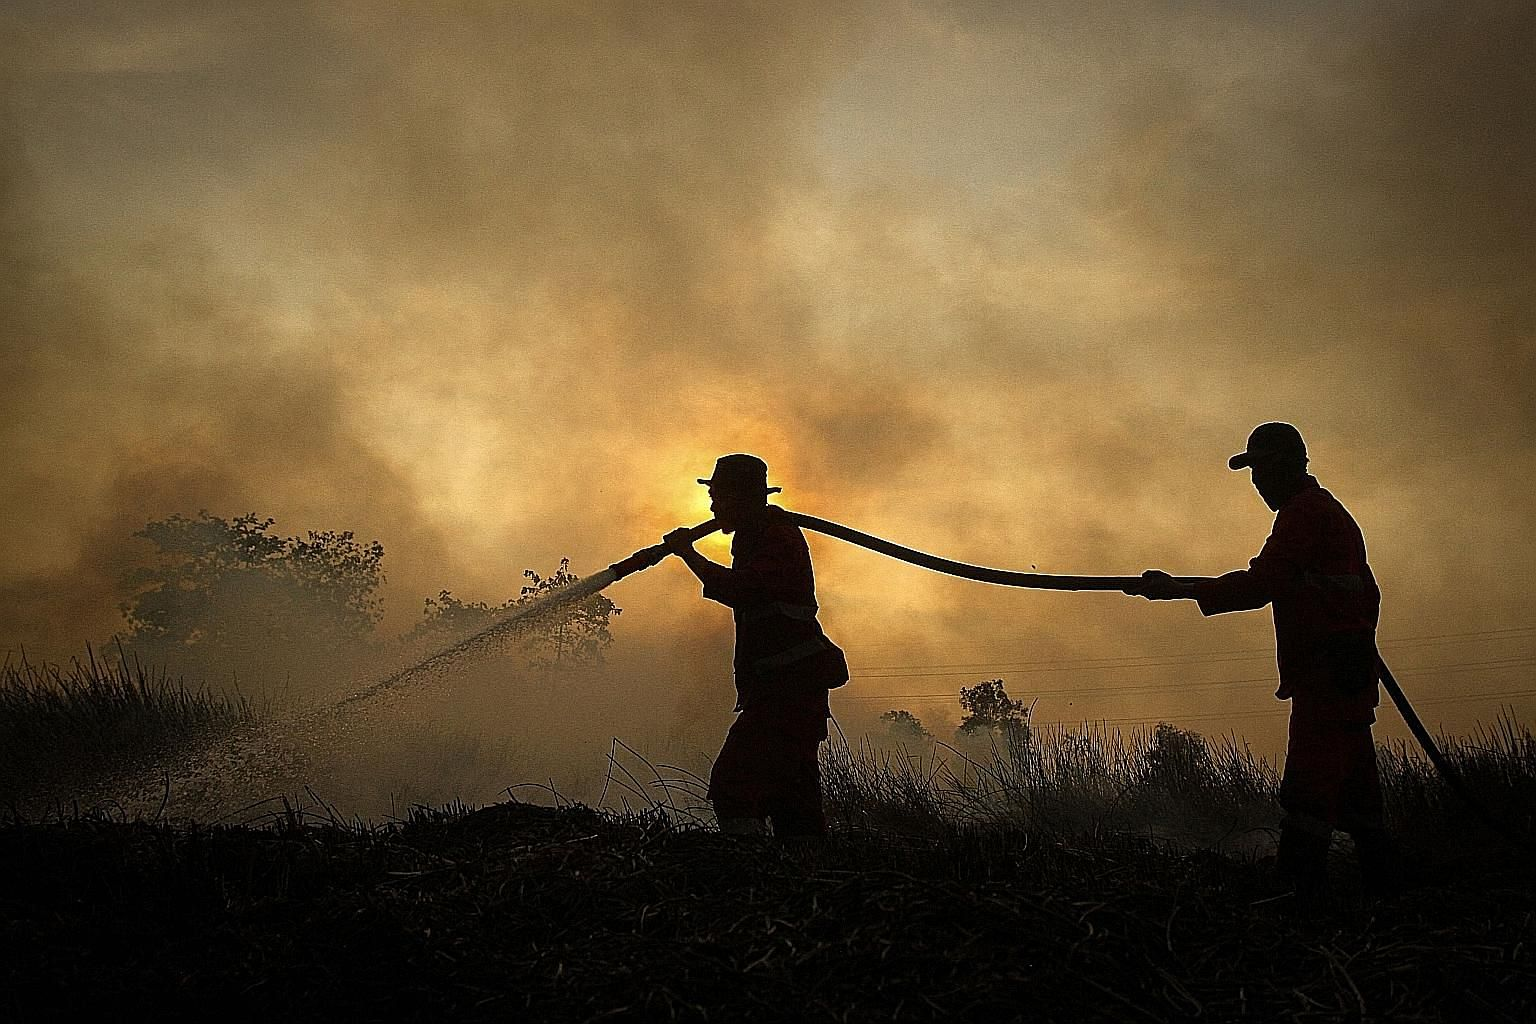 Indonesian firefighters battling a fire earlier this month at a peatland forest in Ogan Ilir, South Sumatra. The Indonesian authorities are deploying thousands of extra personnel to prevent a repeat of the 2015 fires, which were the worst for two dec